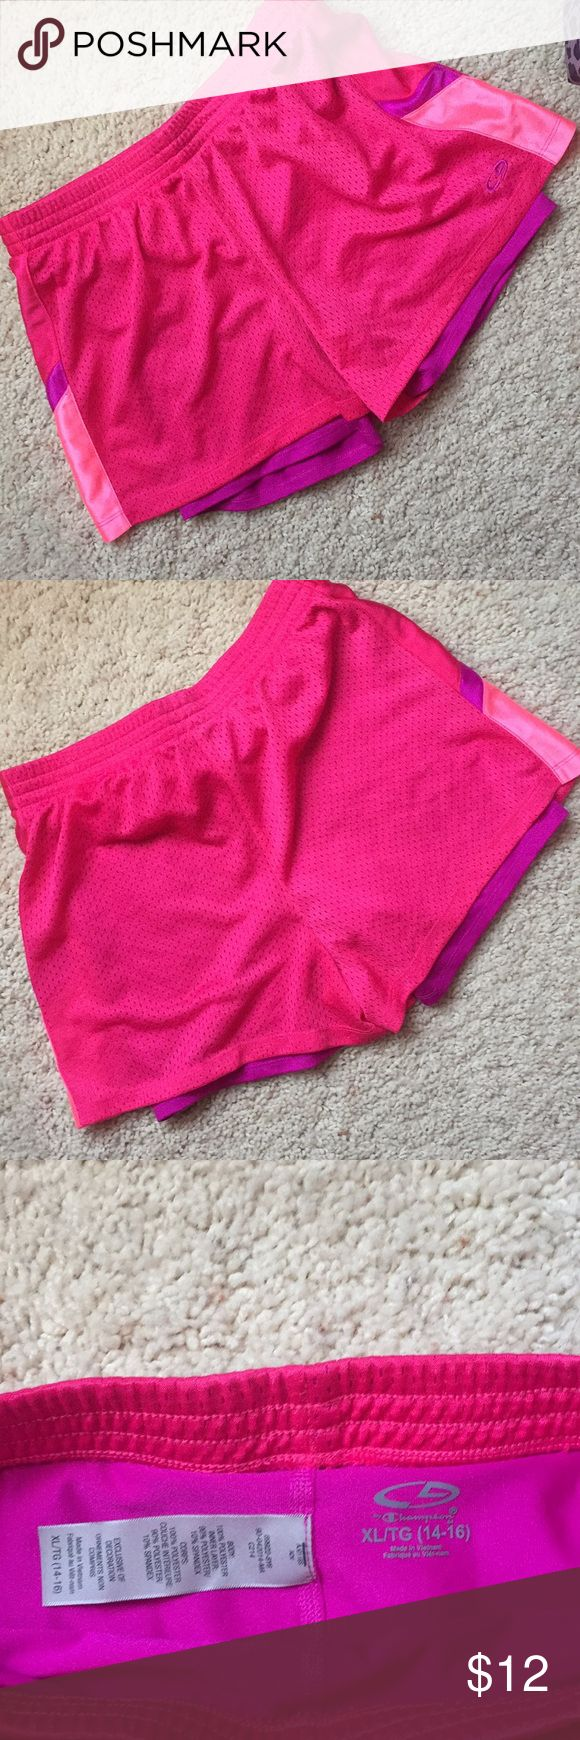 Hot pink Champion workout shorts with spandex Like brand new, barely worn. Mesh hot pink shorts with purple spandex underneath. Girls XL, fits like women's S or XS. G7 by Champion Champion Shorts